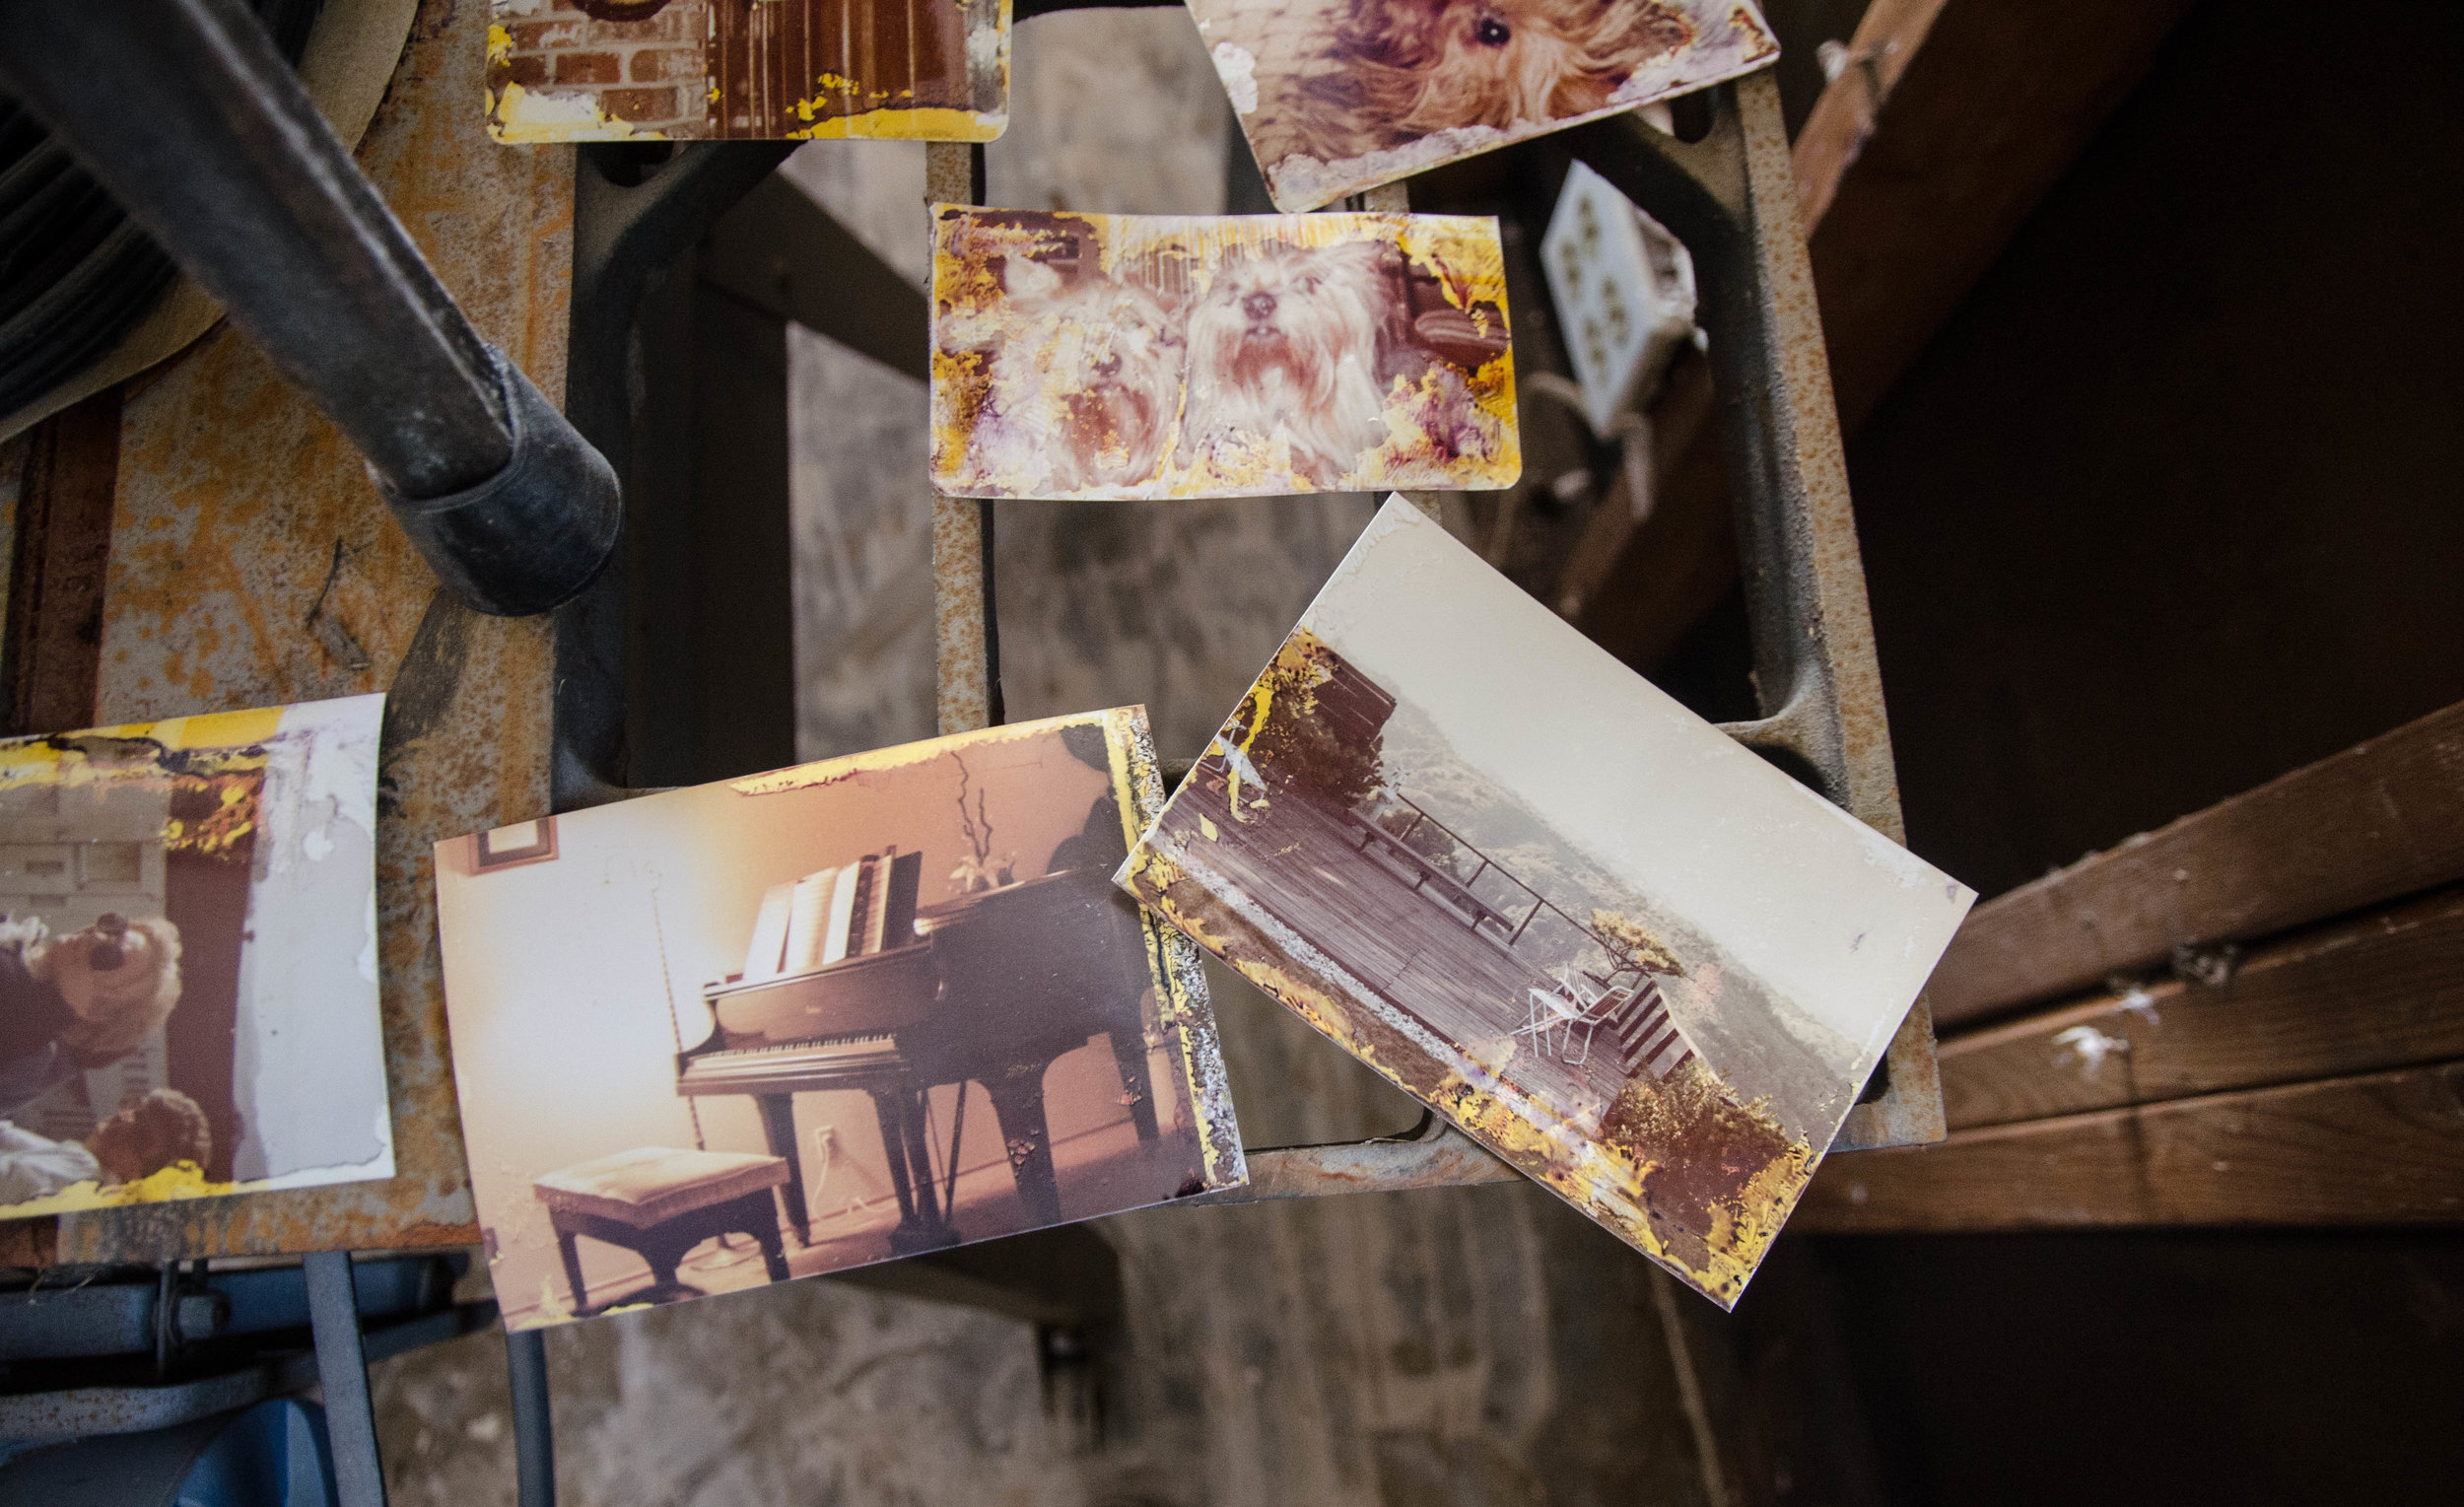 Flood damaged family photographs are spread out to dry around the house.